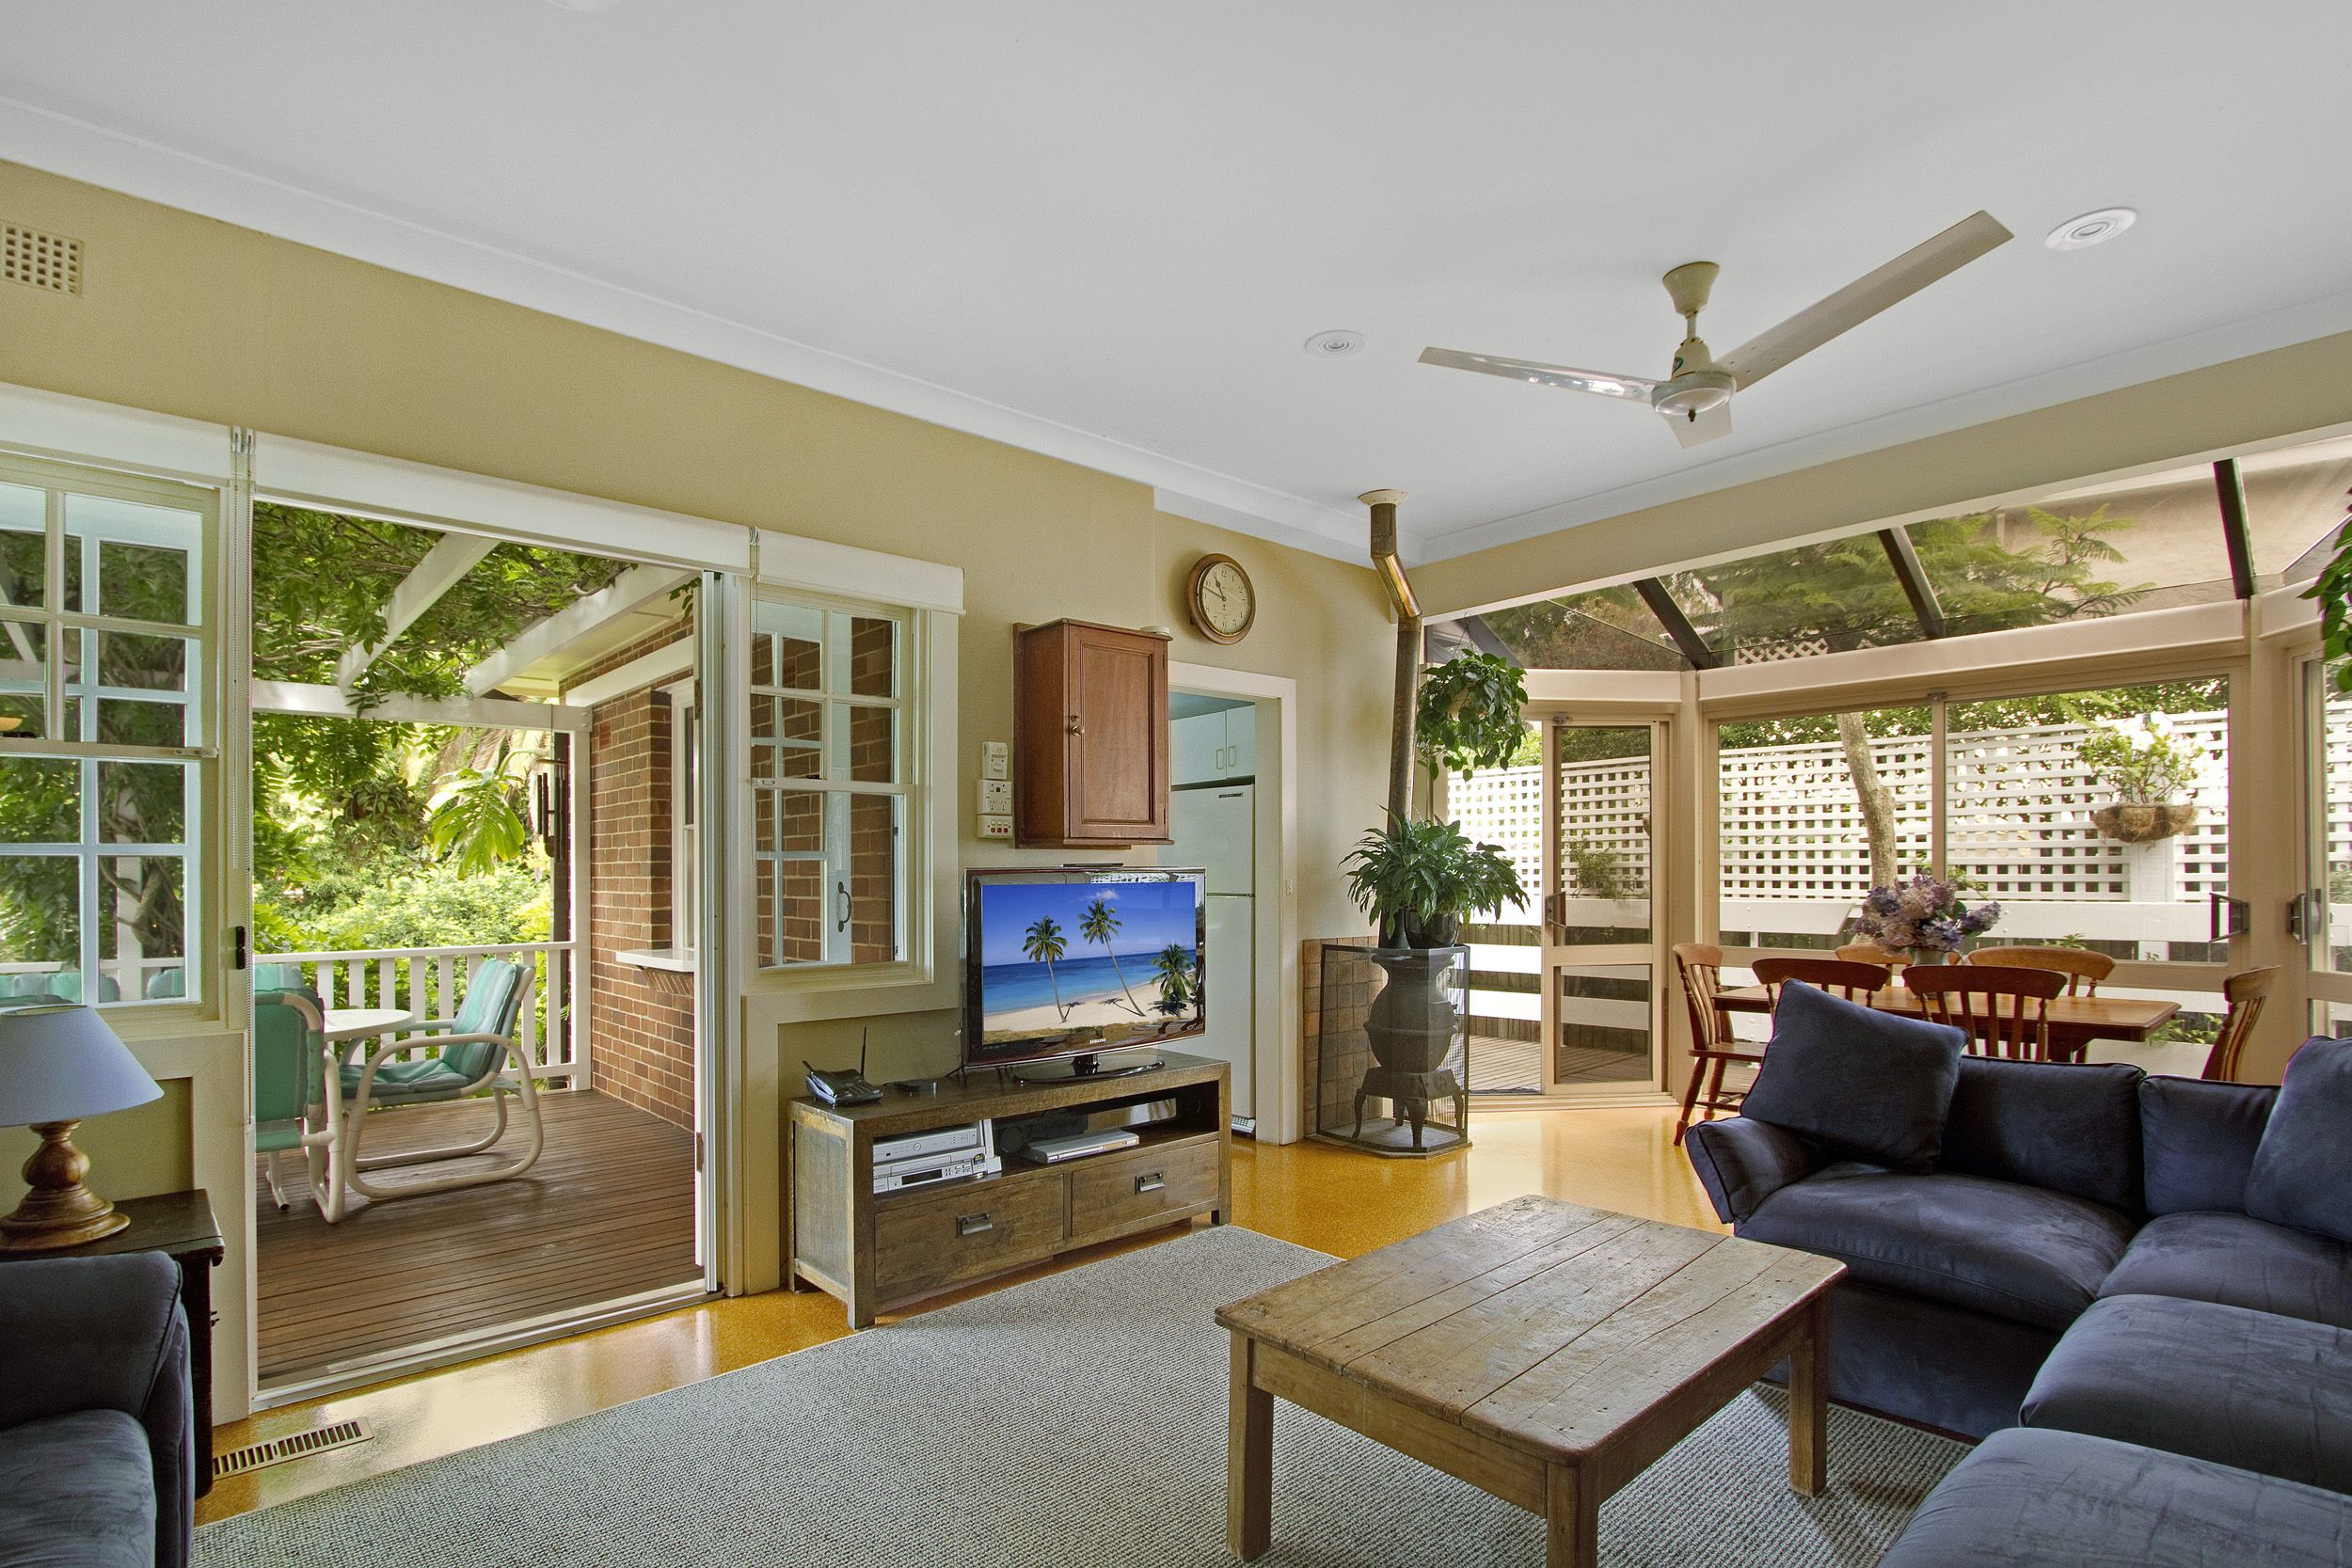 Real estate for sale 11 kardella avenue killara nsw for Stanhope swimming pool opening hours